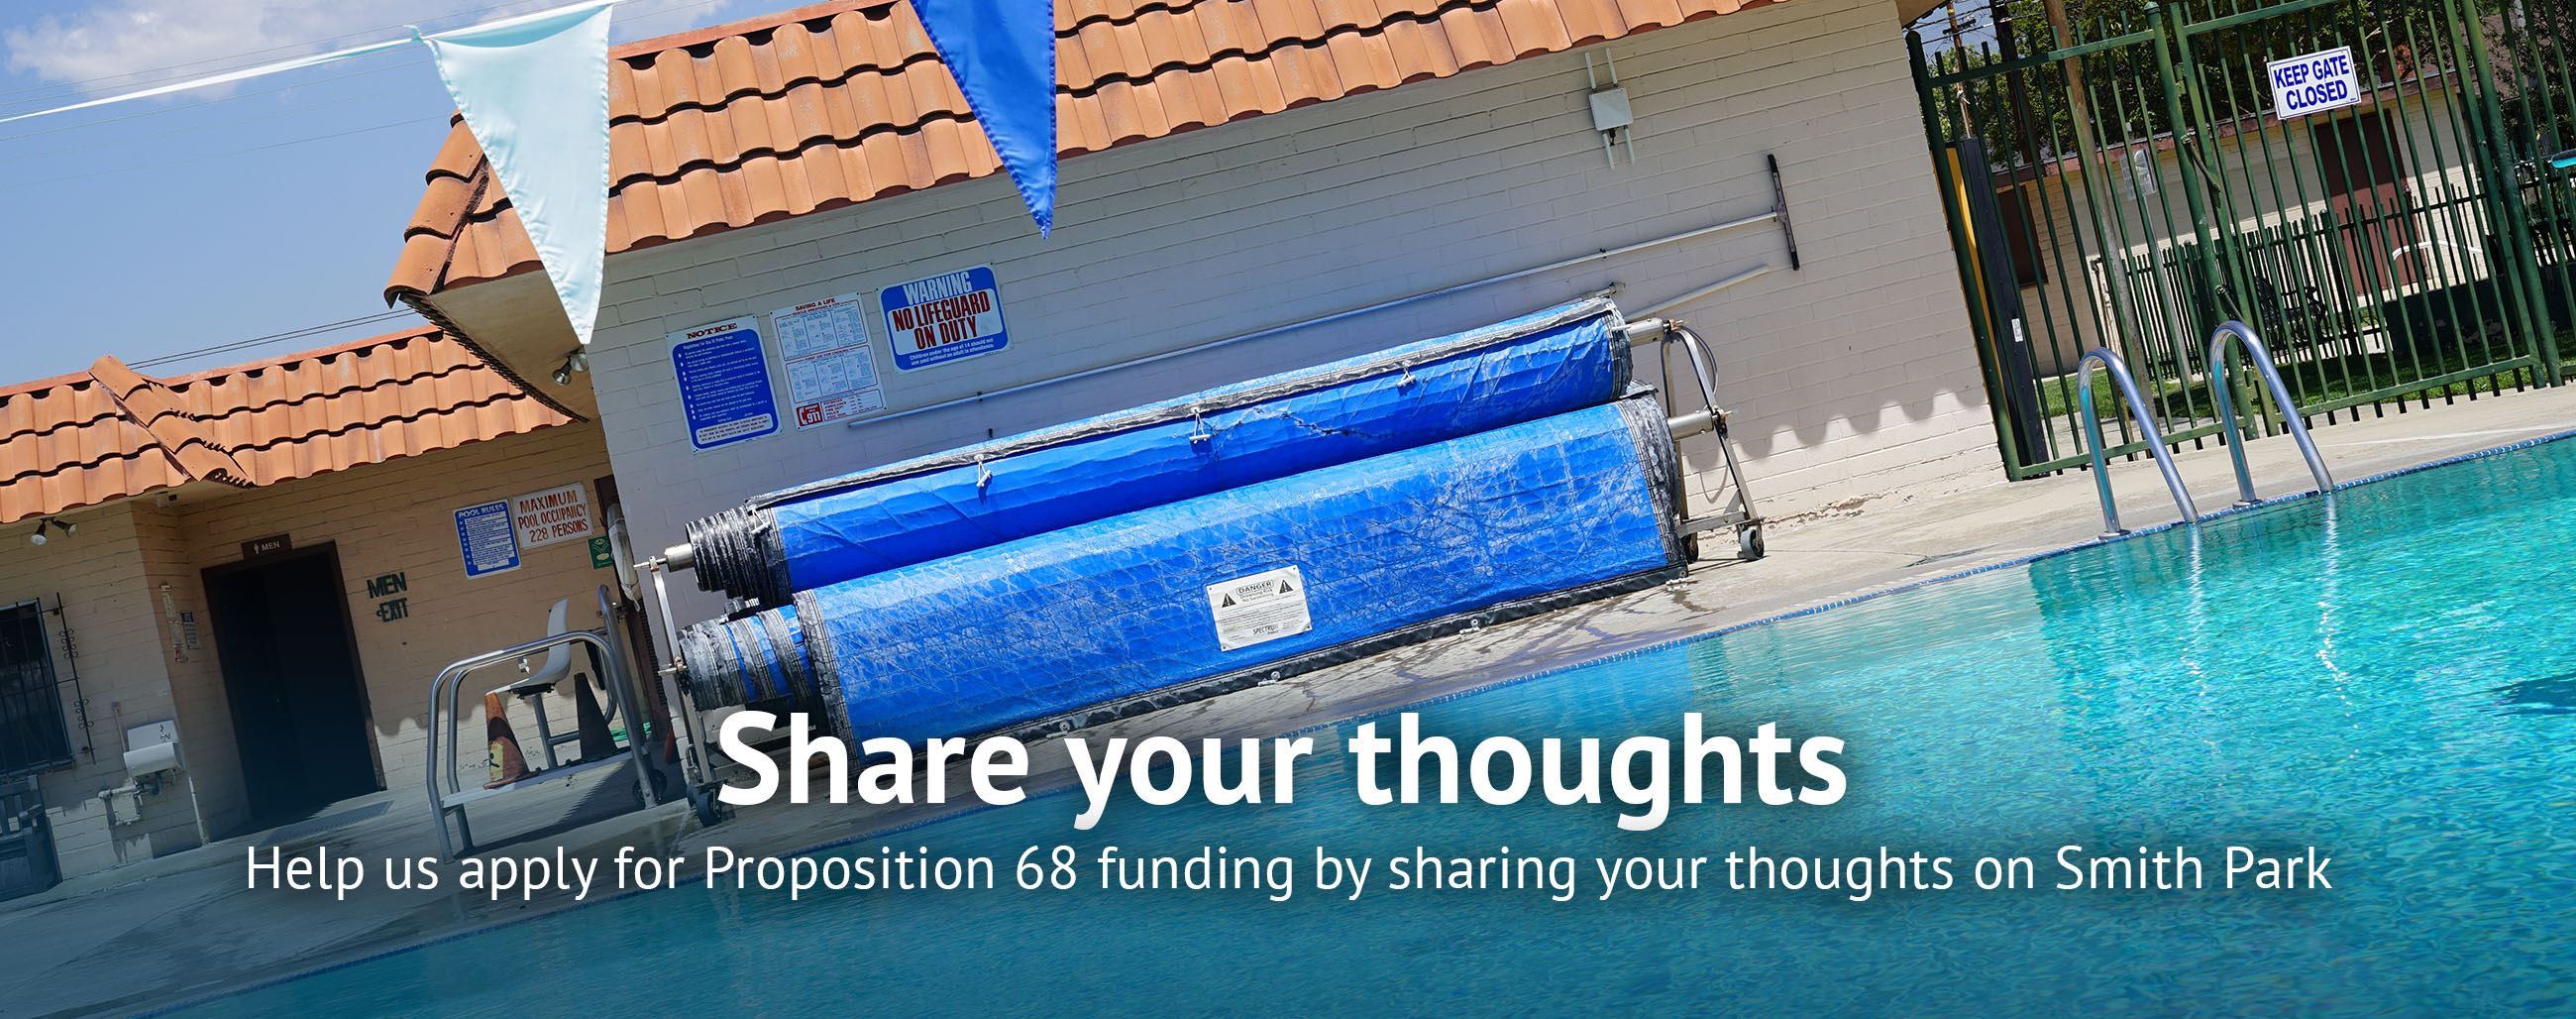 Help us apply for Proposition 68 funding by sharing your thoughts on Smith Park